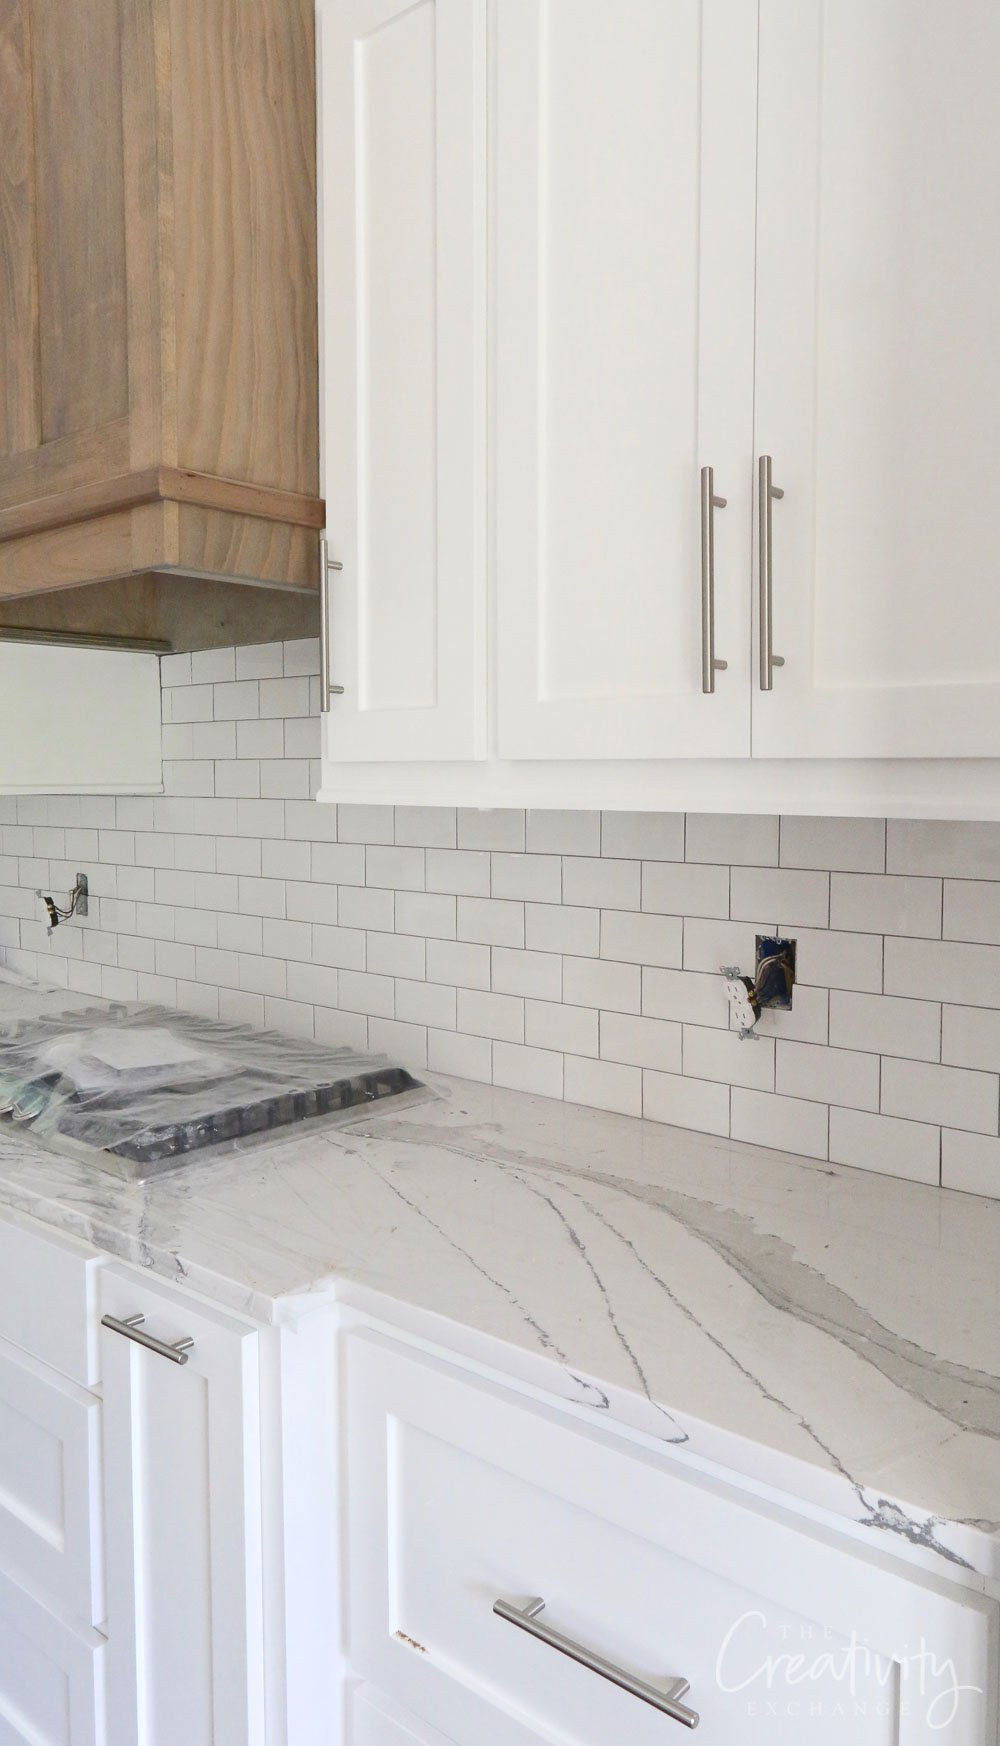 Quartz marble patterned countertops